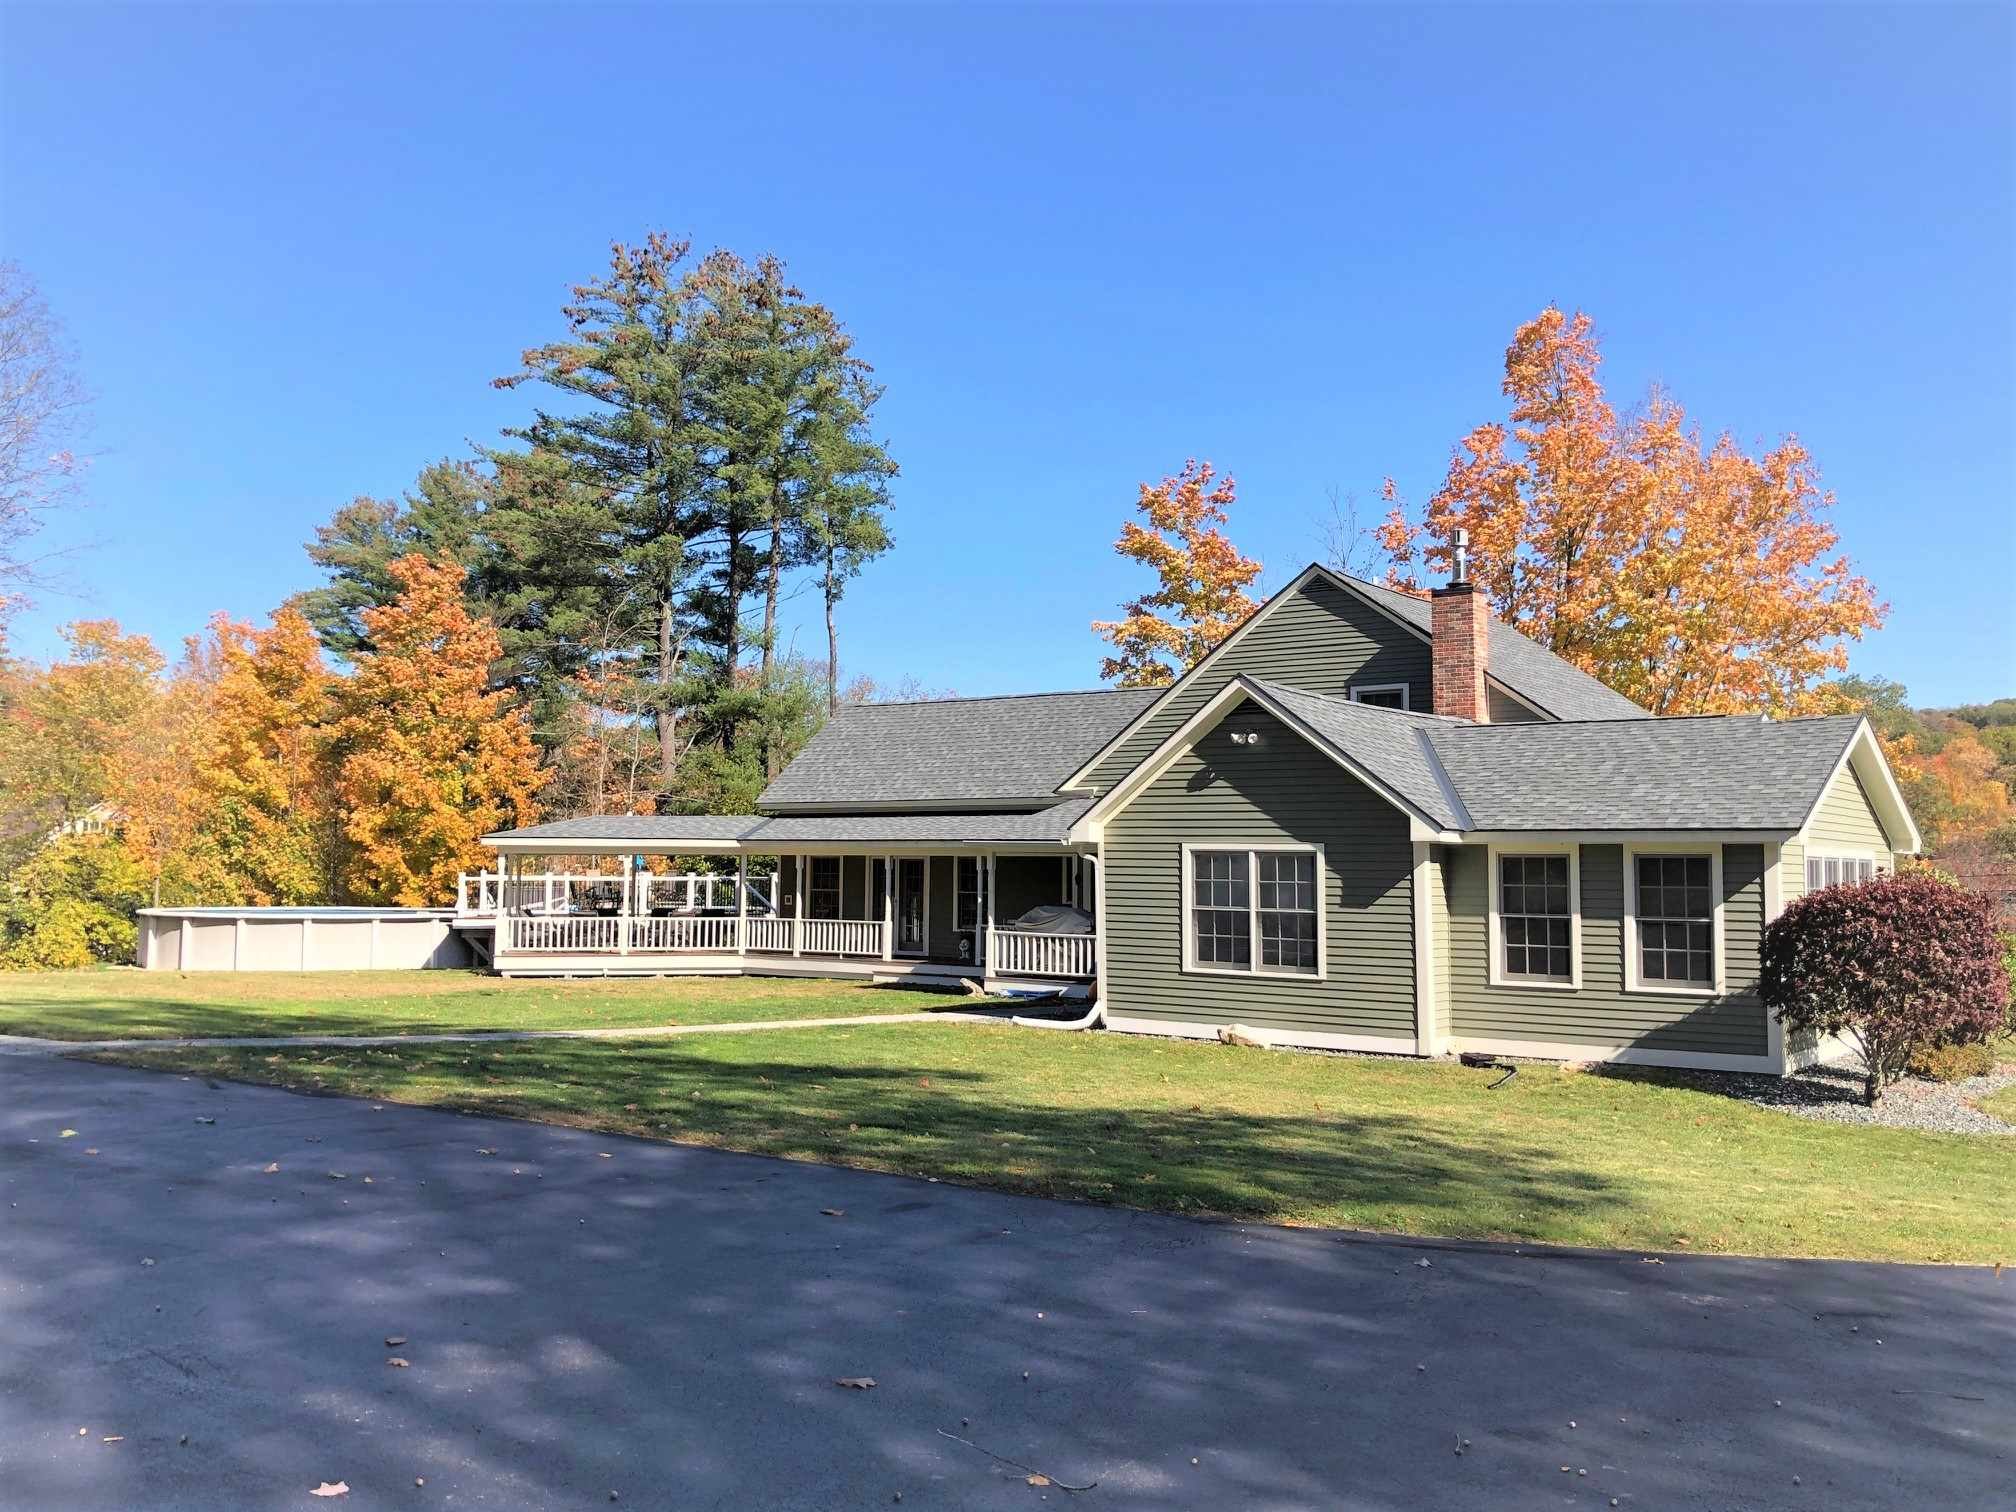 MLS 4834482: 63 Spring Street, Chesterfield NH